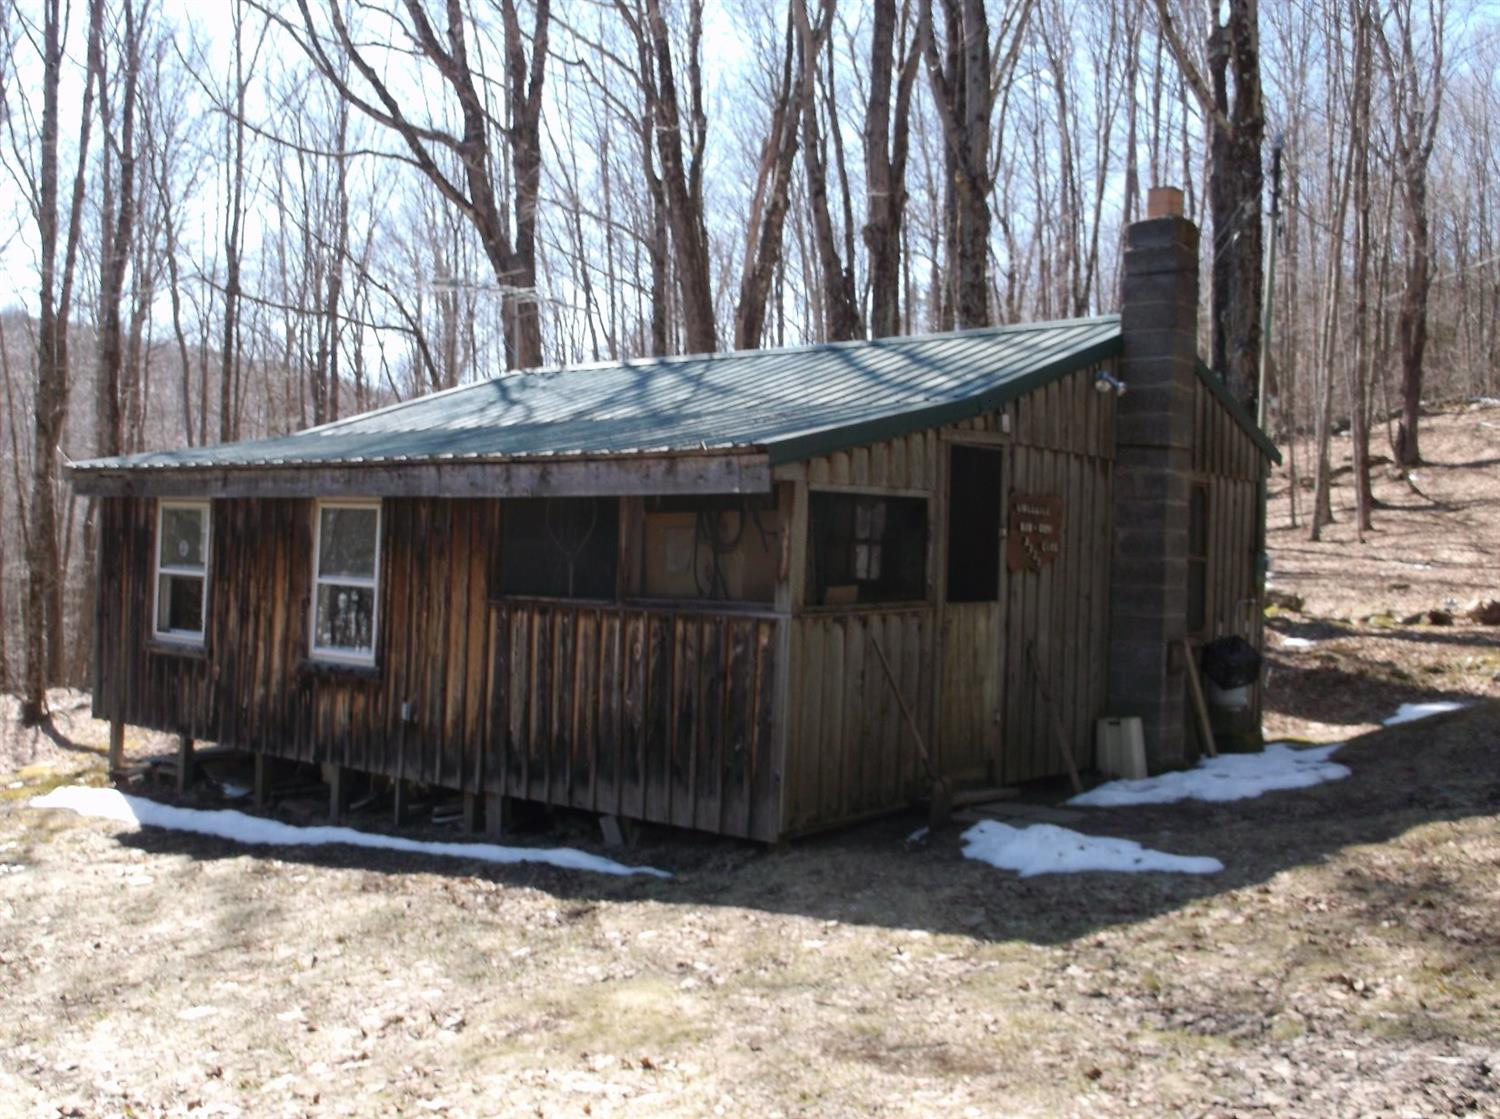 65,000 - Seasonal Cabin5.9 AcresBorders NYS Land200' From NYS Owned Lake